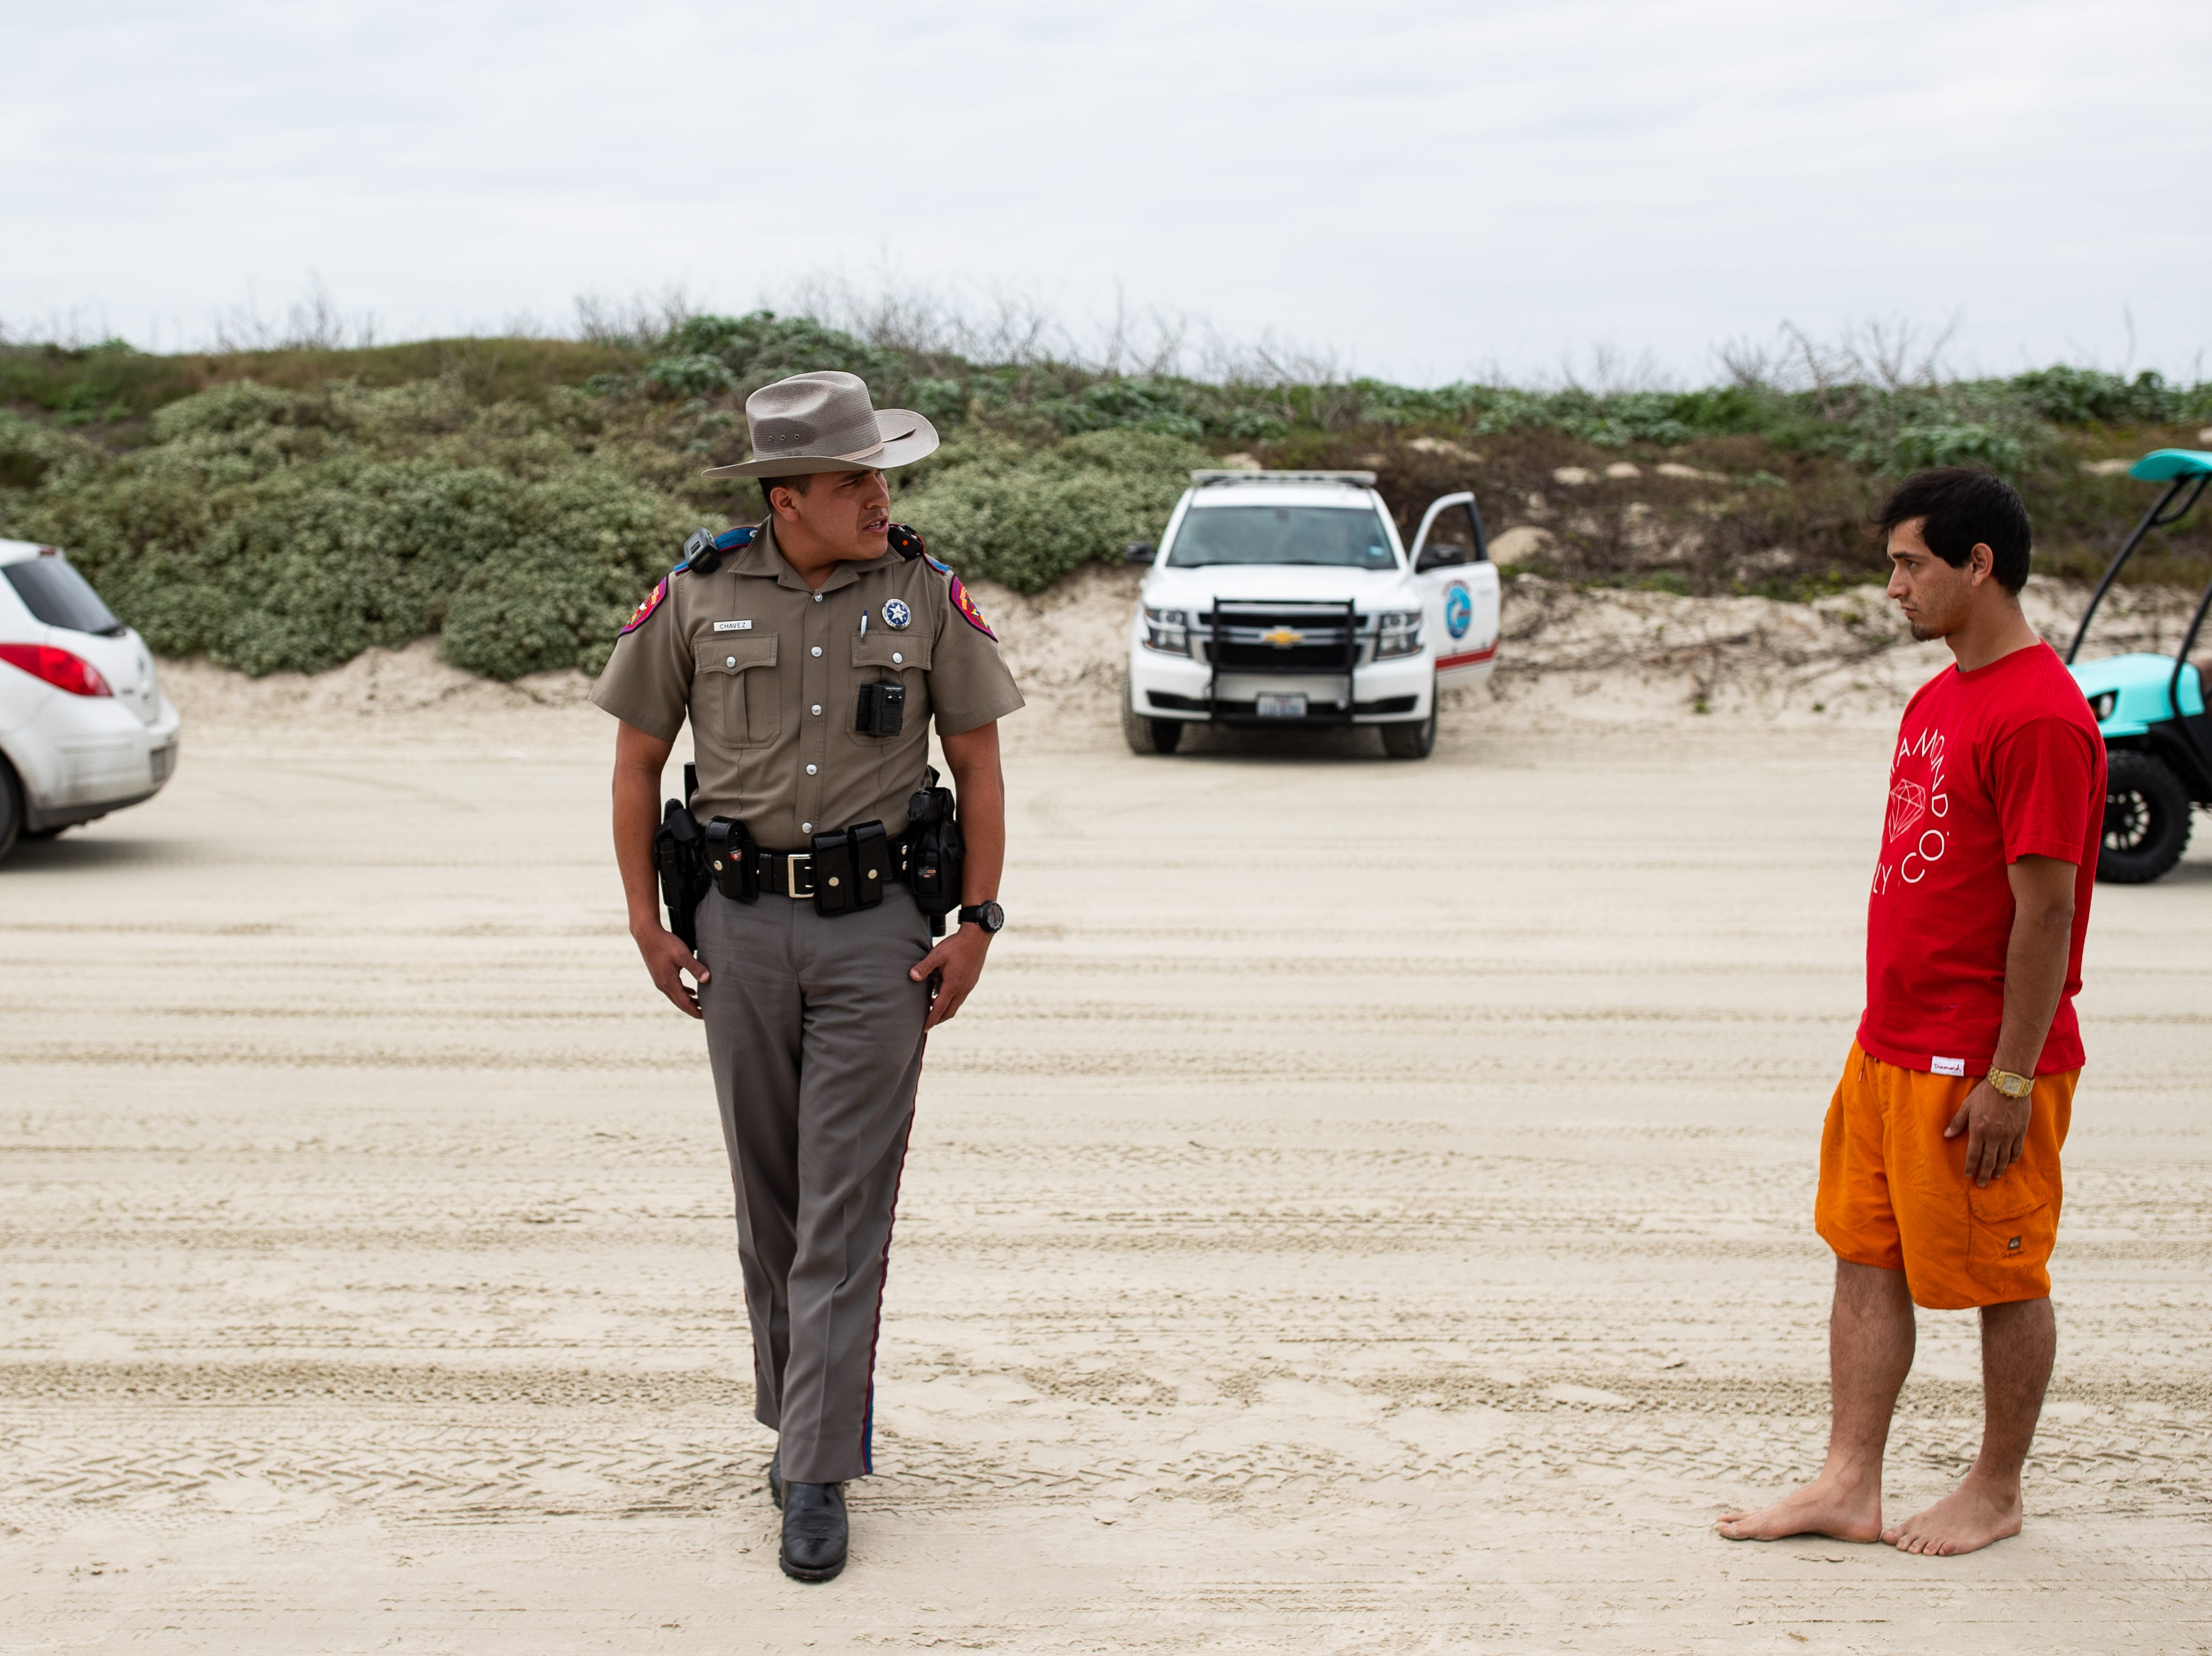 A DPS trooper administers a field sobriety test as people  celebrate spring break 2019 on the beach in Port  Aransas on Monday, March, 11, 2019.